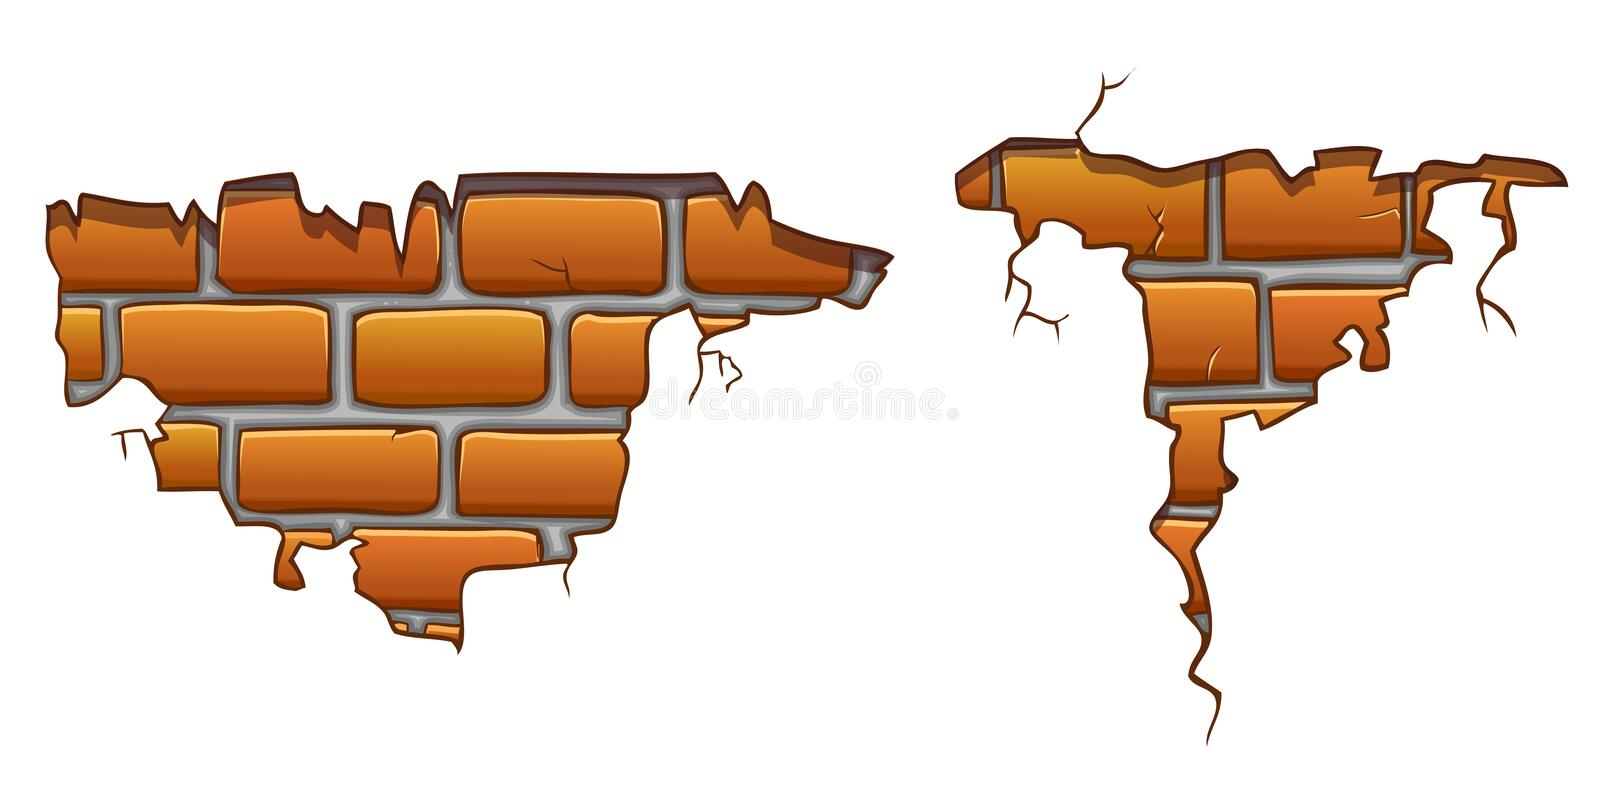 Wall cracks with orange bricks stock illustration